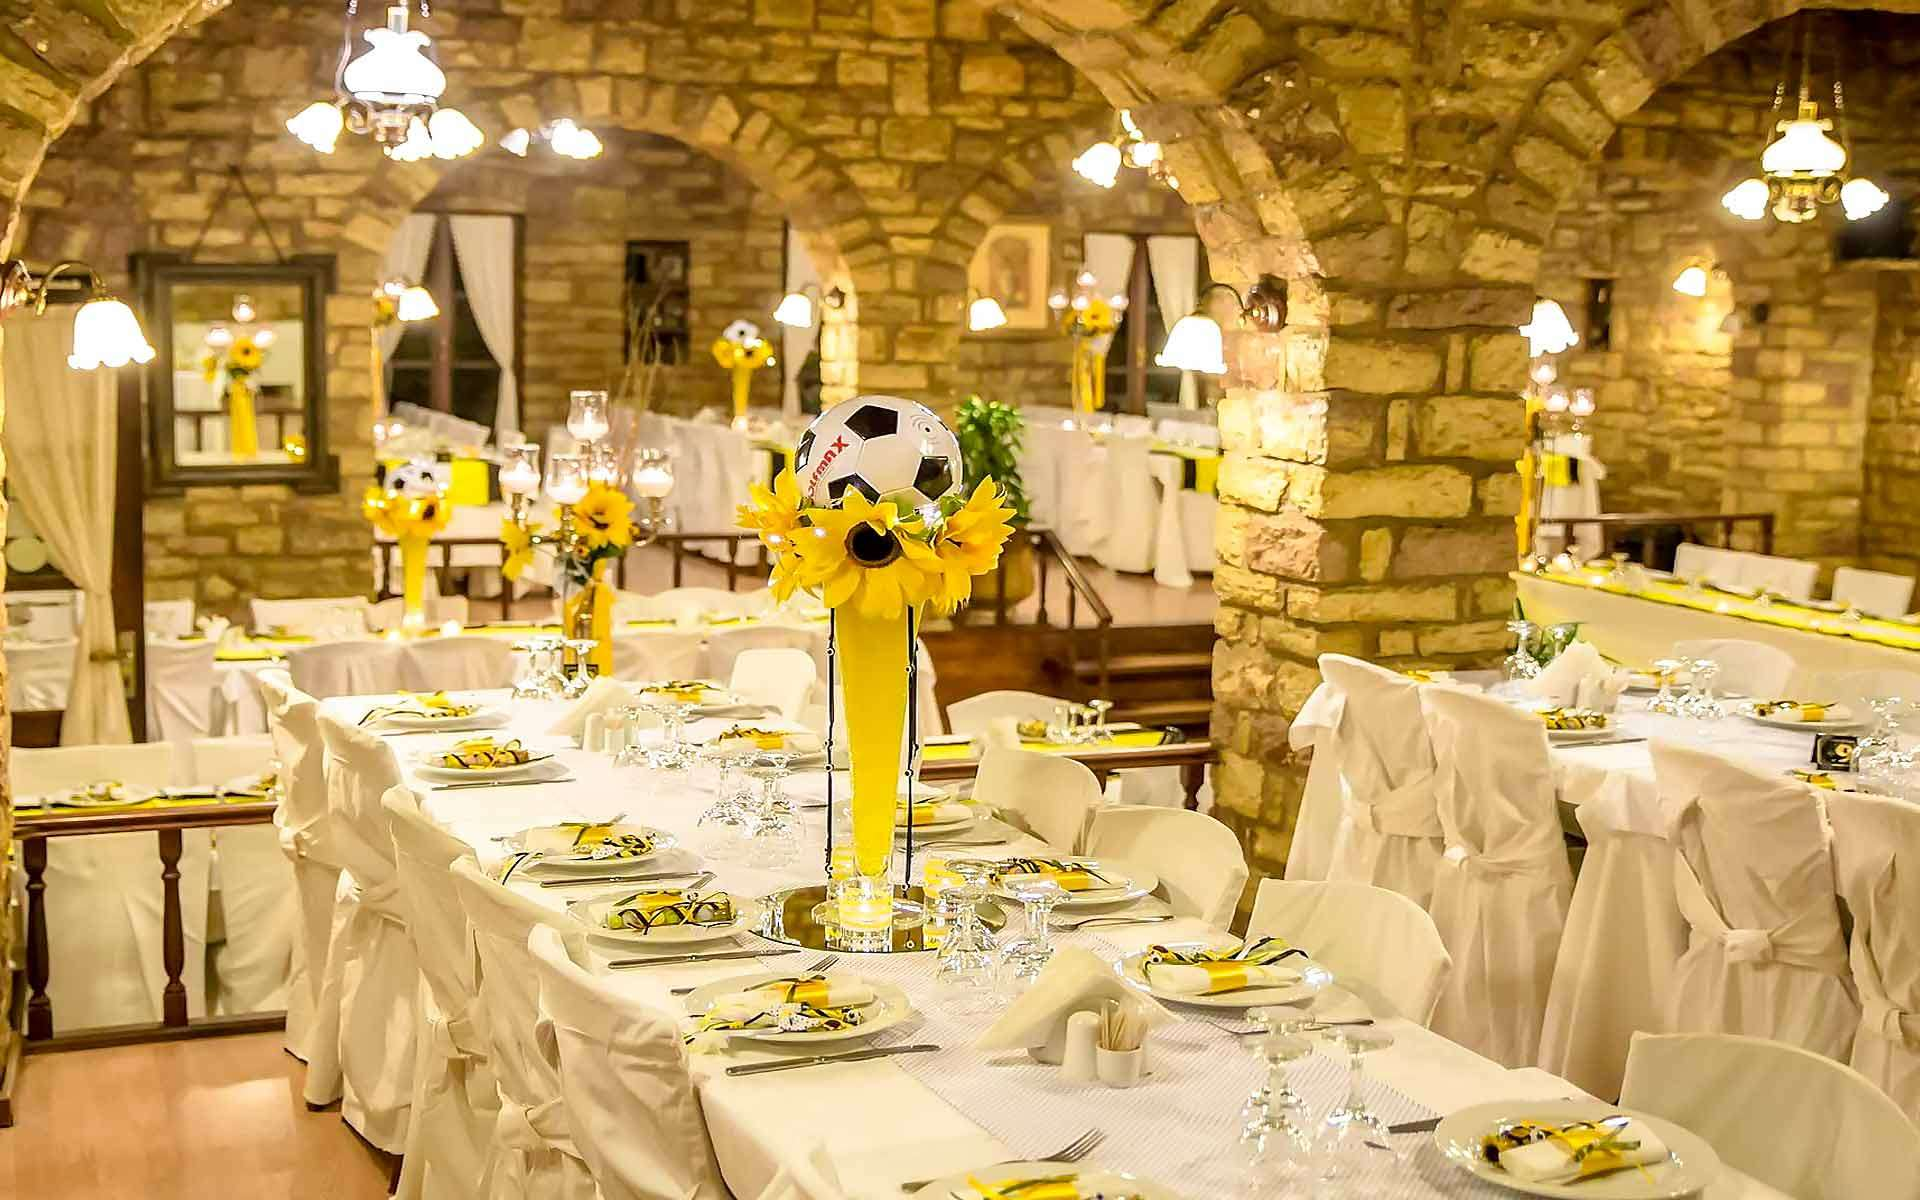 Unique-Baptism-Party-Idea-With-Yellow-And-Black-Colors-And-A-Ball-As-A-Centerpiece-In-A-Tall-Vase